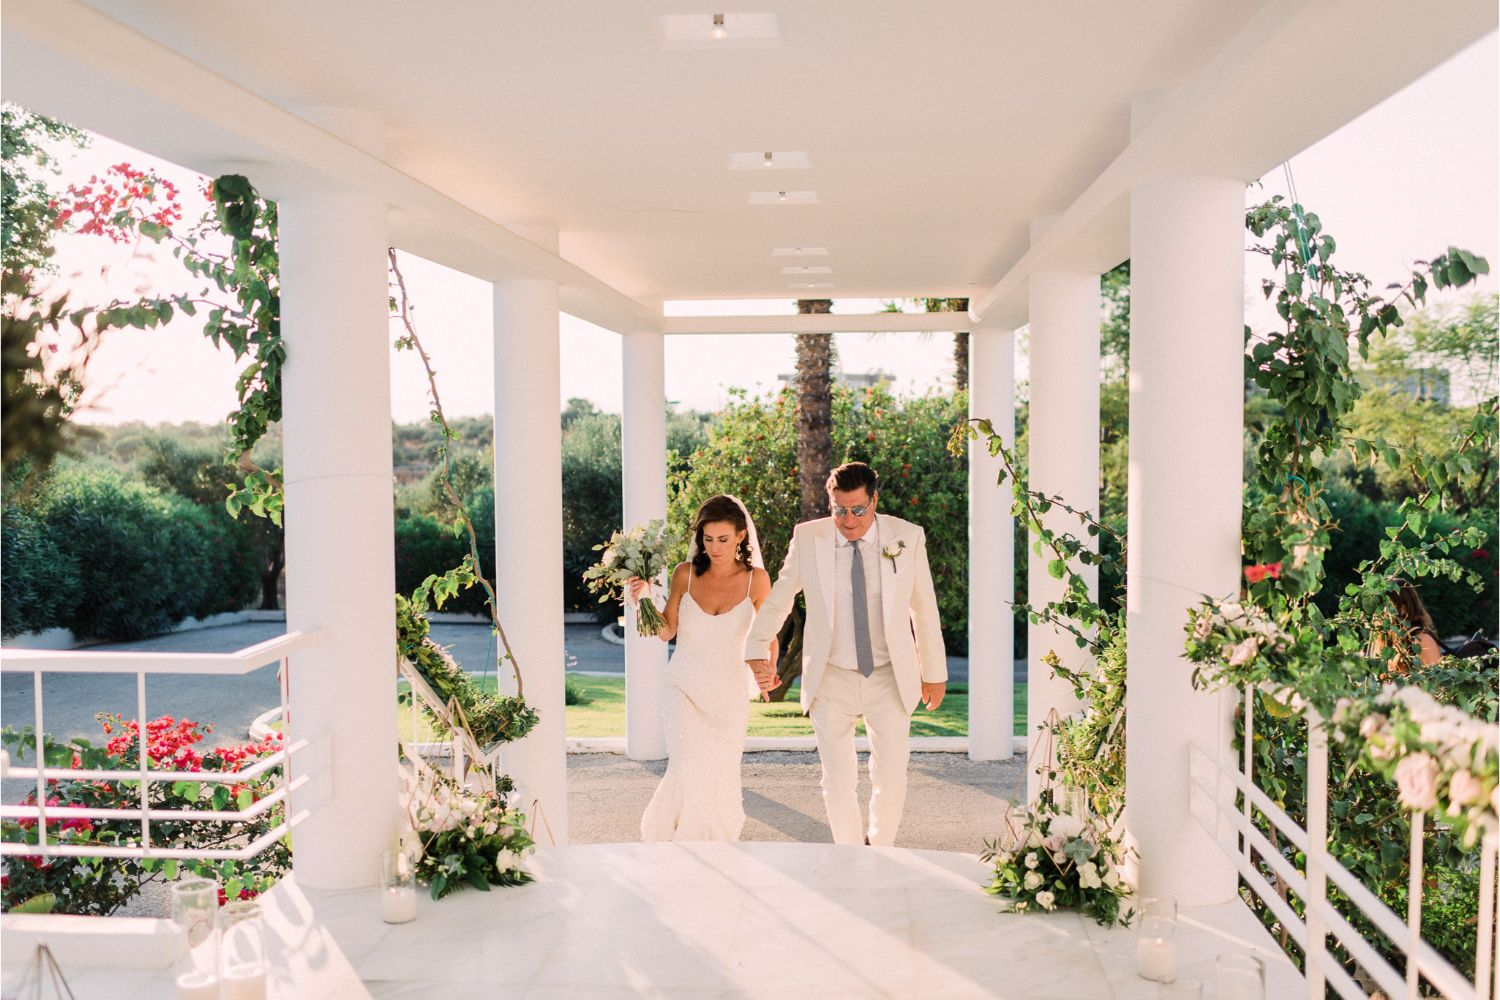 newlyweds entrance to villa wedding in Crete